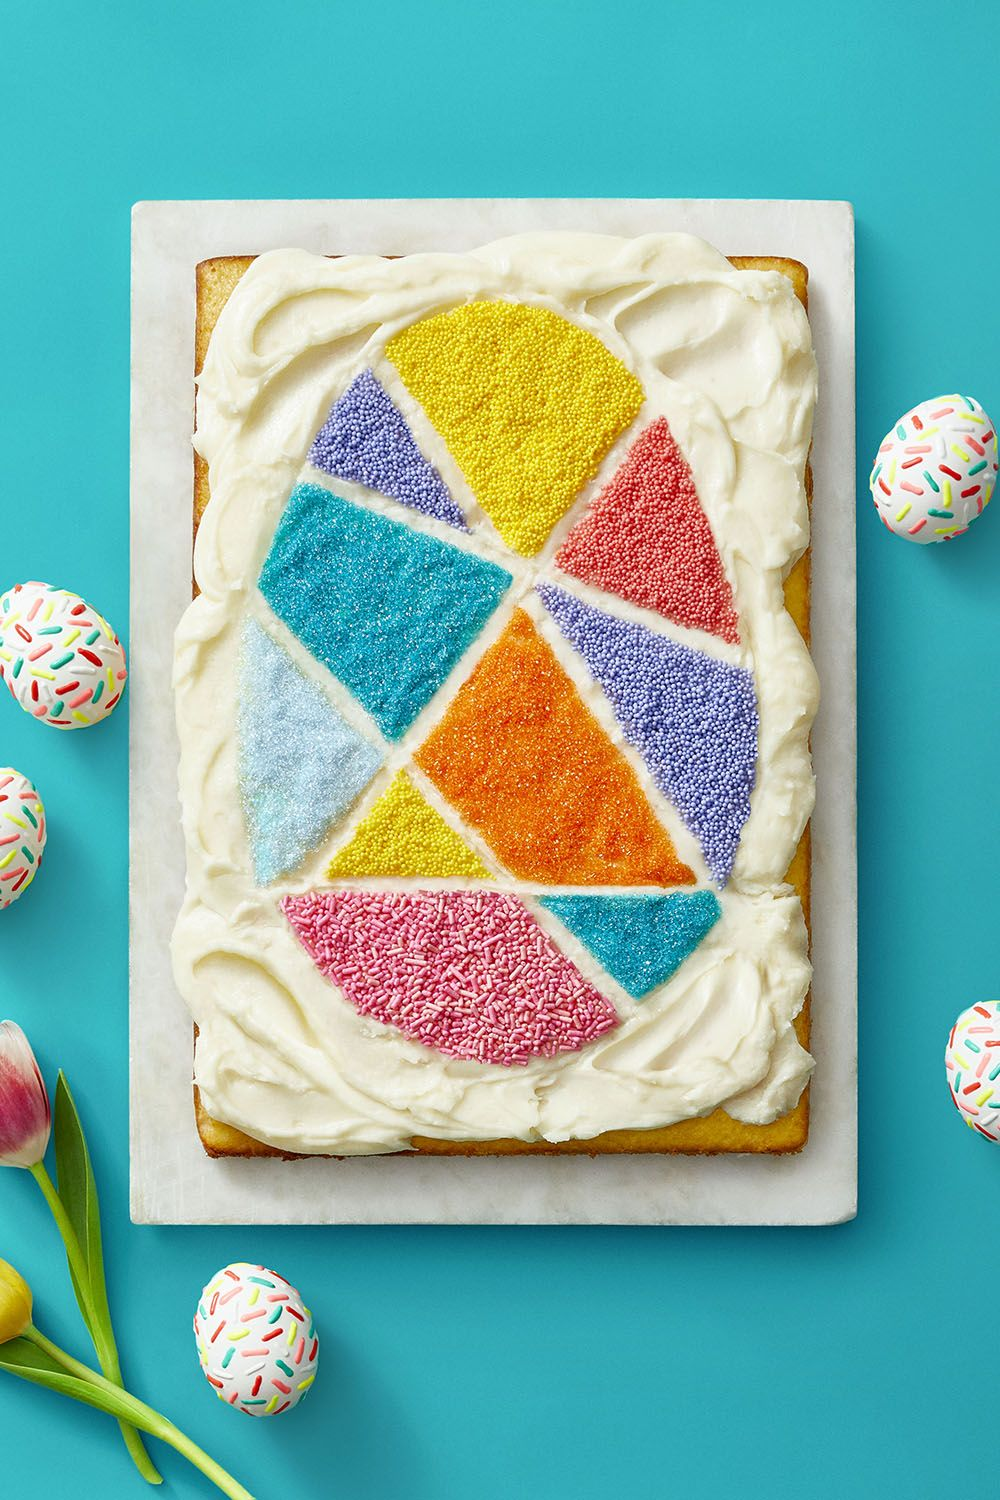 50 Best Easter Cake Recipes Easy Ideas For Decorating Easter Cakes